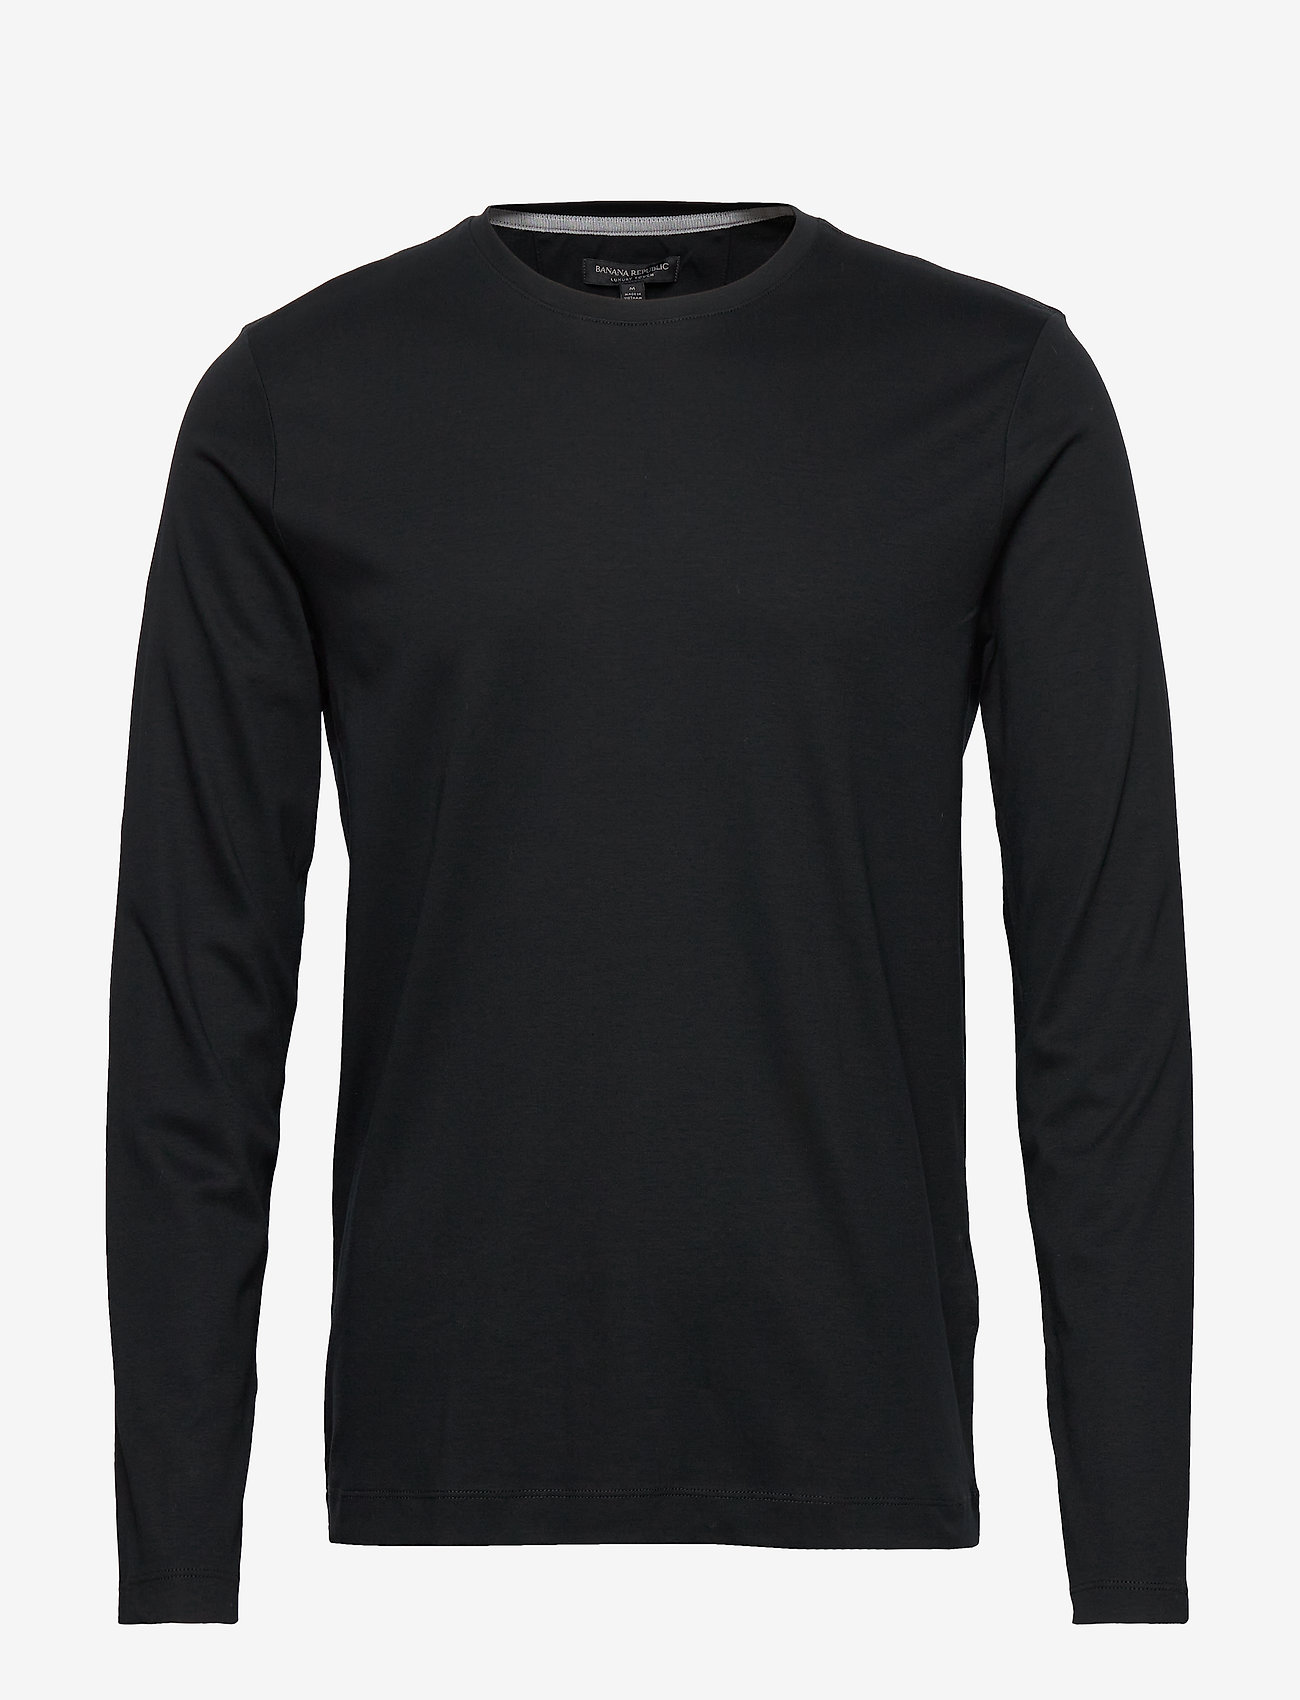 Banana Republic - Luxury-Touch Crew-Neck T-Shirt - basic t-shirts - black - 0